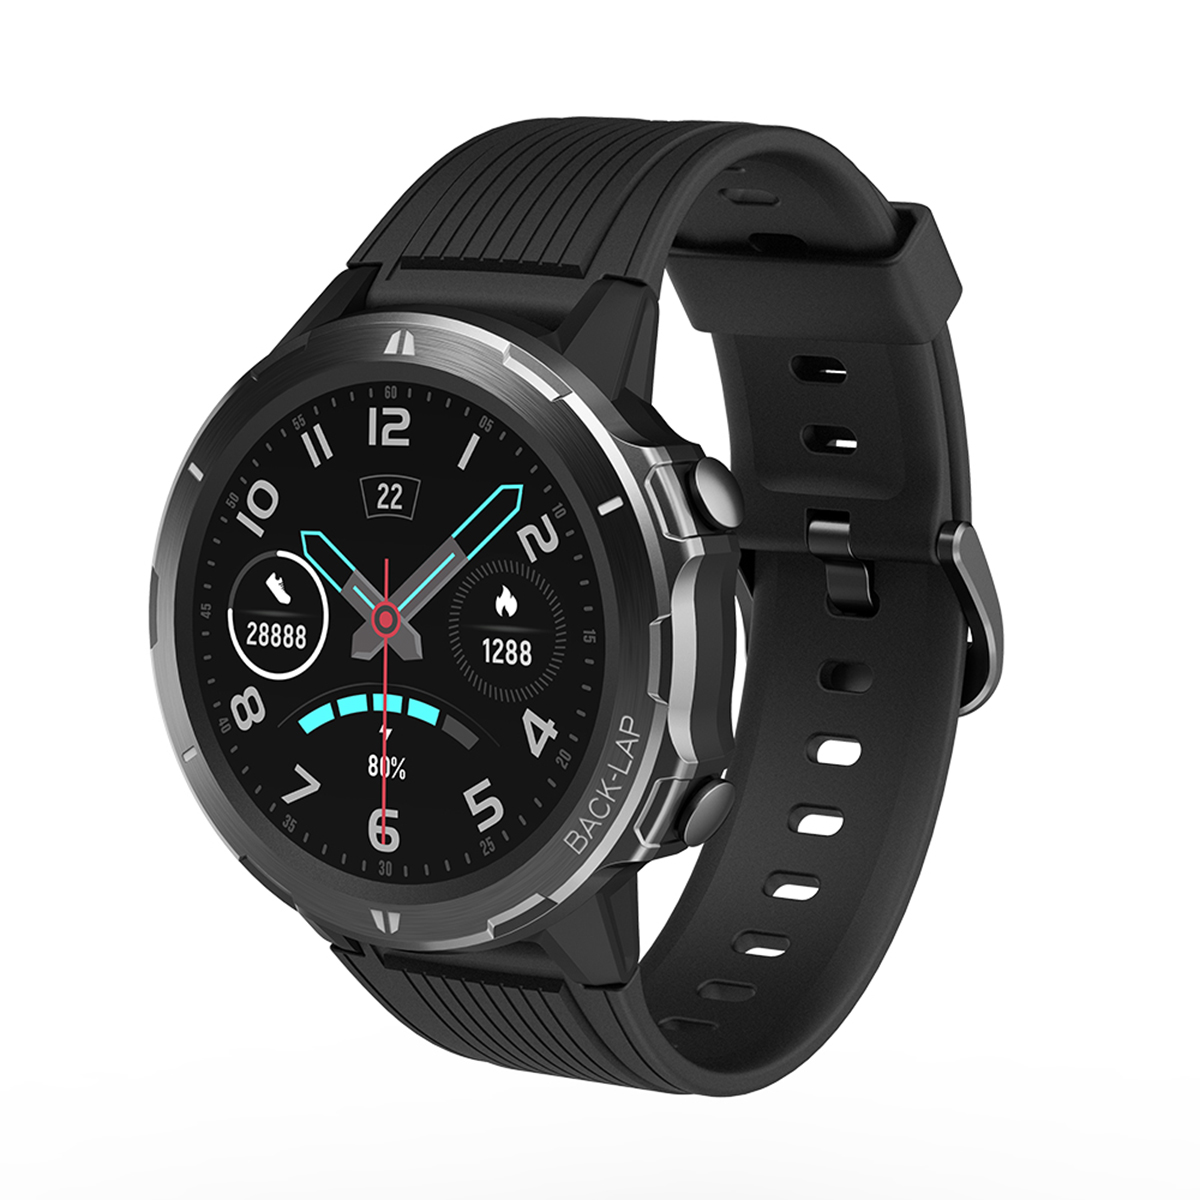 UMIDIGI Uwatch GT Smart Watch 5ATM Waterproof BT5.0 Heart Rate  Sleep Monitor Fitness Tracker Pedometer Step Calories SmartwatchSmart  Watches   </title> <meta name=keywords content=Smart Watches, Cheap Smart Watches, UMIDIGI Uwatch GT Smart Watch 5ATM Waterproof BT5.0 Heart Rate Sleep Monitor Fitness Tracker Pedometer Step Calories Smartwatch> <meta name=description content=Cheap Smart Watches, Buy Directly from China Suppliers:UMIDIGI Uwatch GT Smart Watch 5ATM Waterproof BT5.0 Heart Rate Sleep Monitor Fitness Tracker Pedometer Step Calories Smartwatch Enjoy ✓Free Shipping Worldwide! ✓Limited Time Sale✓Easy Return.> <meta name=google-translate-customization content=8daa66079a8aa29e-f219f934a1051f5a-ge19f8e1eaa3bf94b-e>      <meta name=viewport content=width=device-width, initial-scale=1.0, maximum-scale=1.0, user-scalable=no>  <meta name=data-spm content=a2g0o>   <meta property=og:url content=//www.aliexpress.com/item/4000460658604.html?src=ibdm_d03p0558e02r02